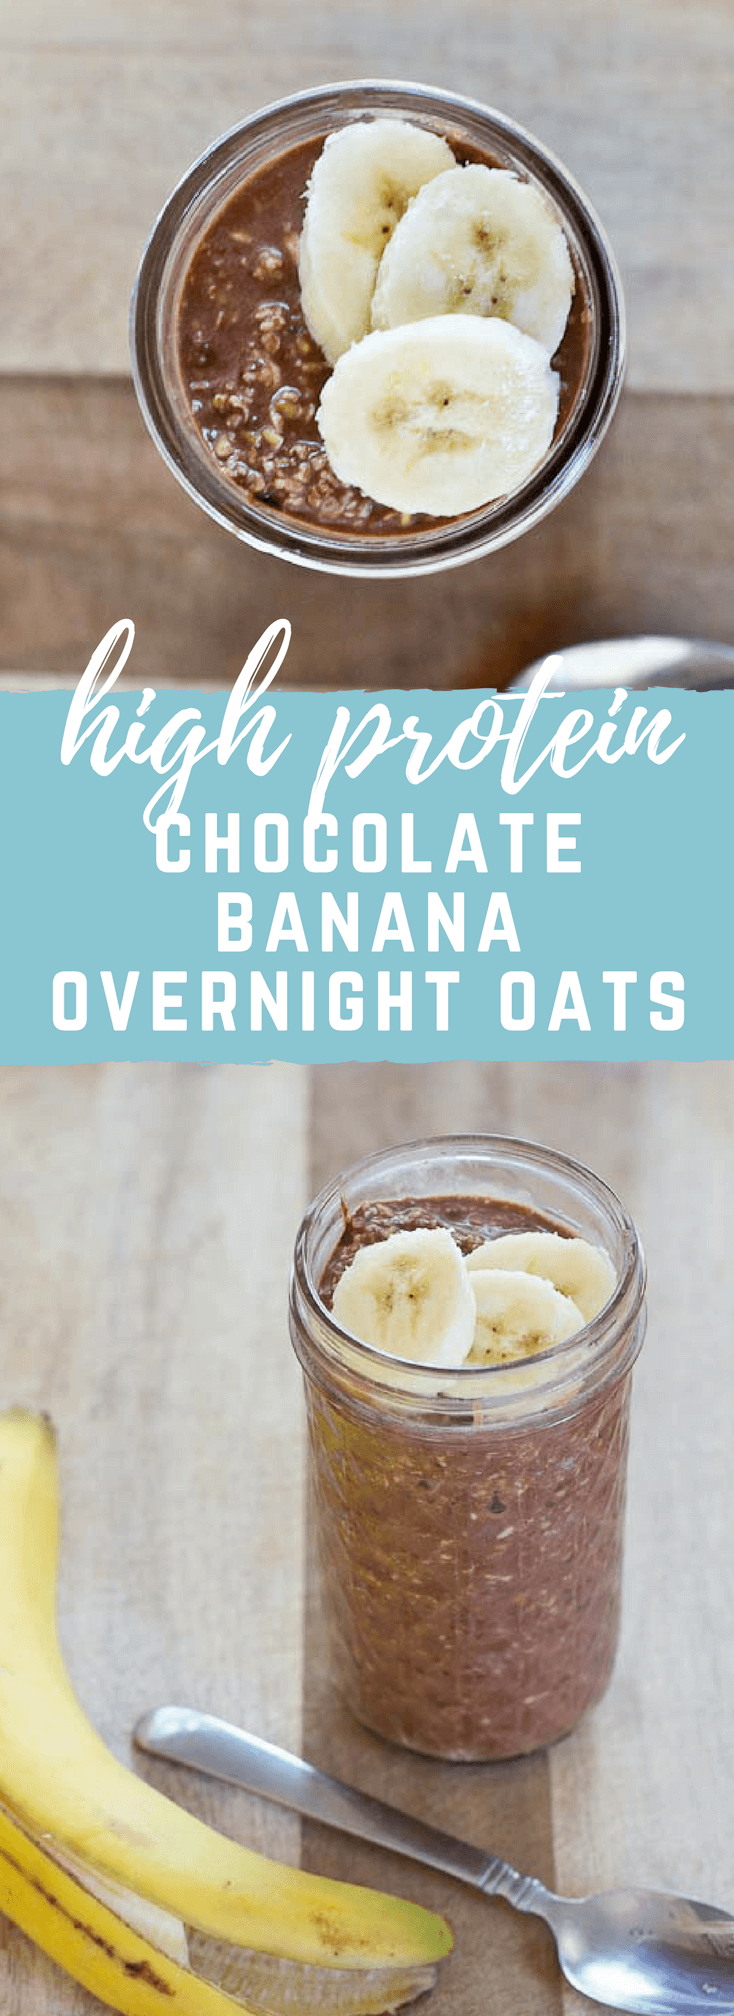 High Protein Chocolate Banana Overnight Oats | quick breakfast ...